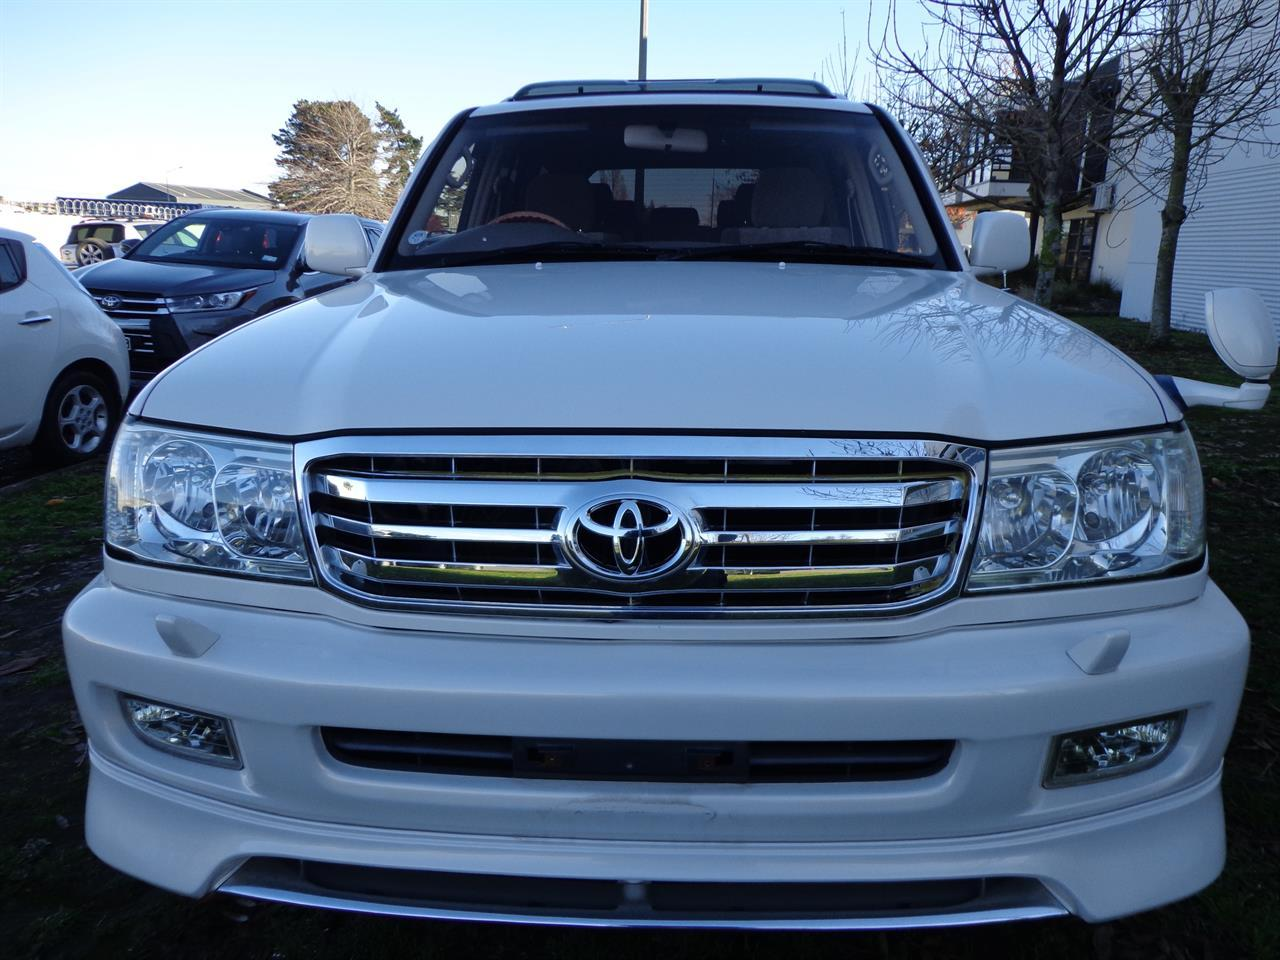 image-8, 2000 Toyota Land Cruiser 100 VX Limited G Selectio at Christchurch